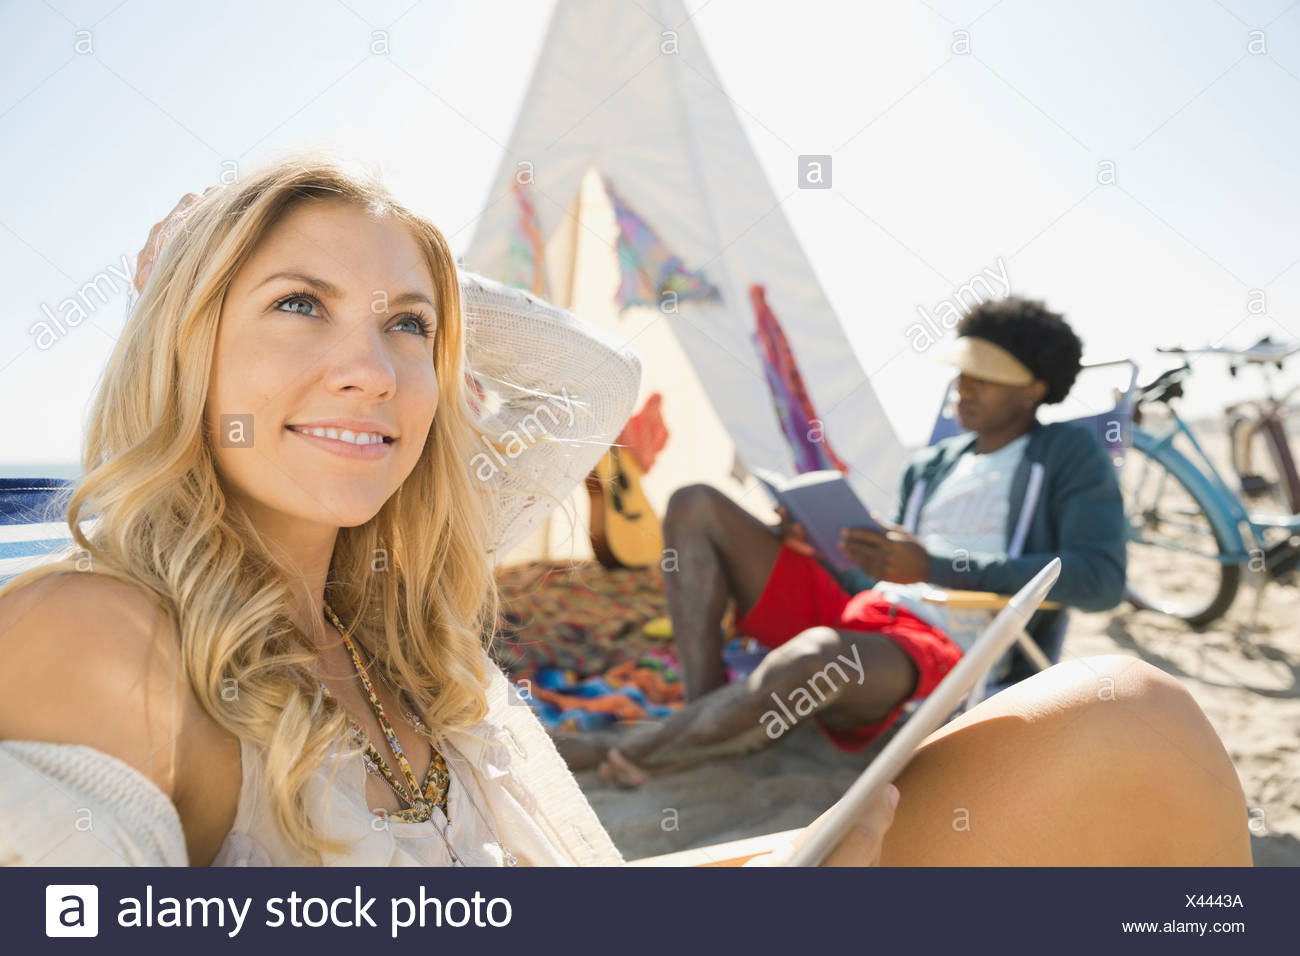 Thoughtful woman daydreaming on beach - Stock Image